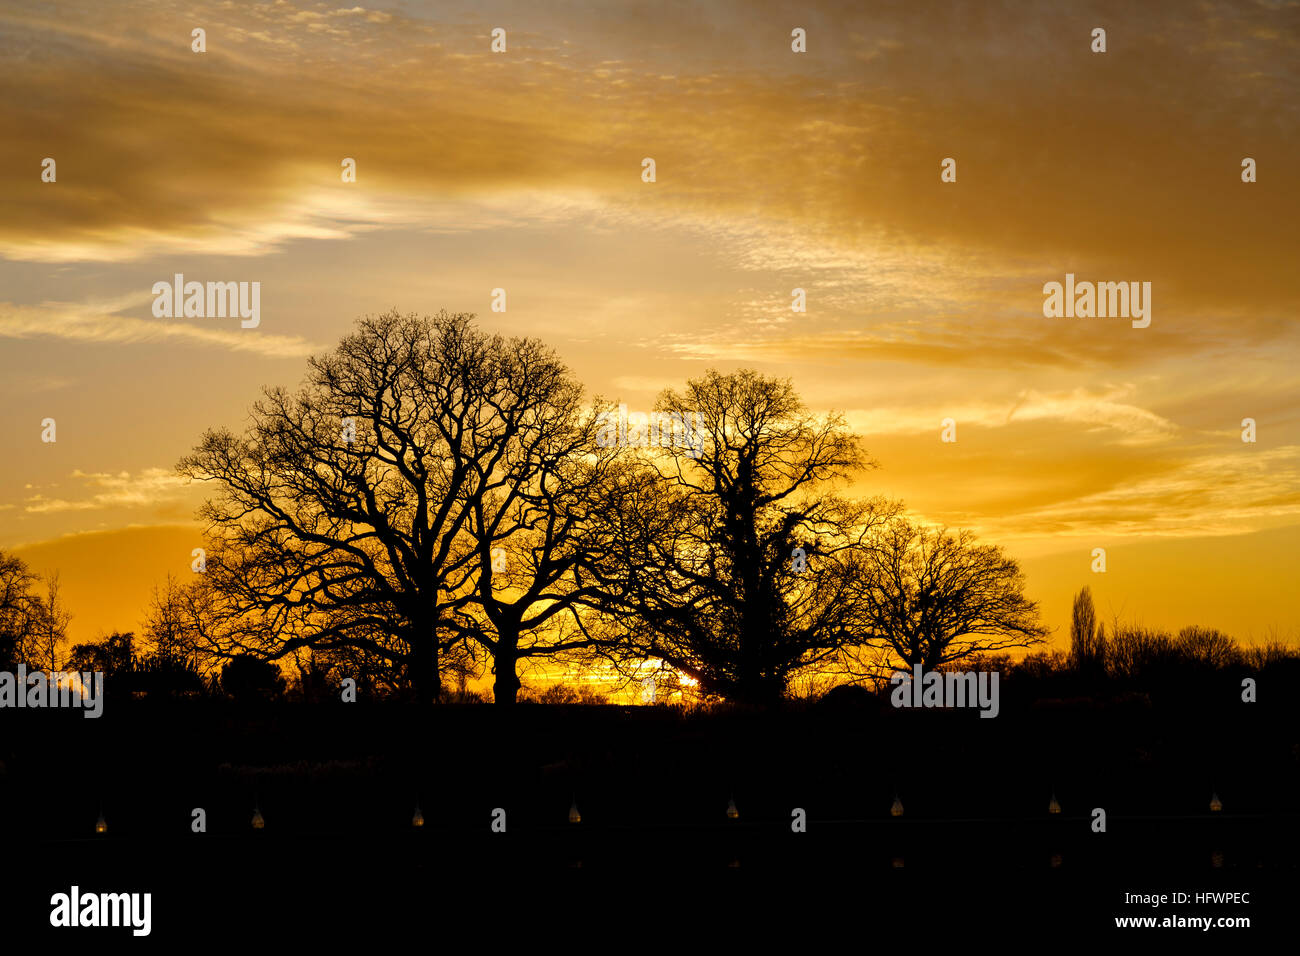 Sunset behind silhouetted leafless trees in winter at the Christmas Glow event at RHS Wisley, Surrey, UK - Stock Image